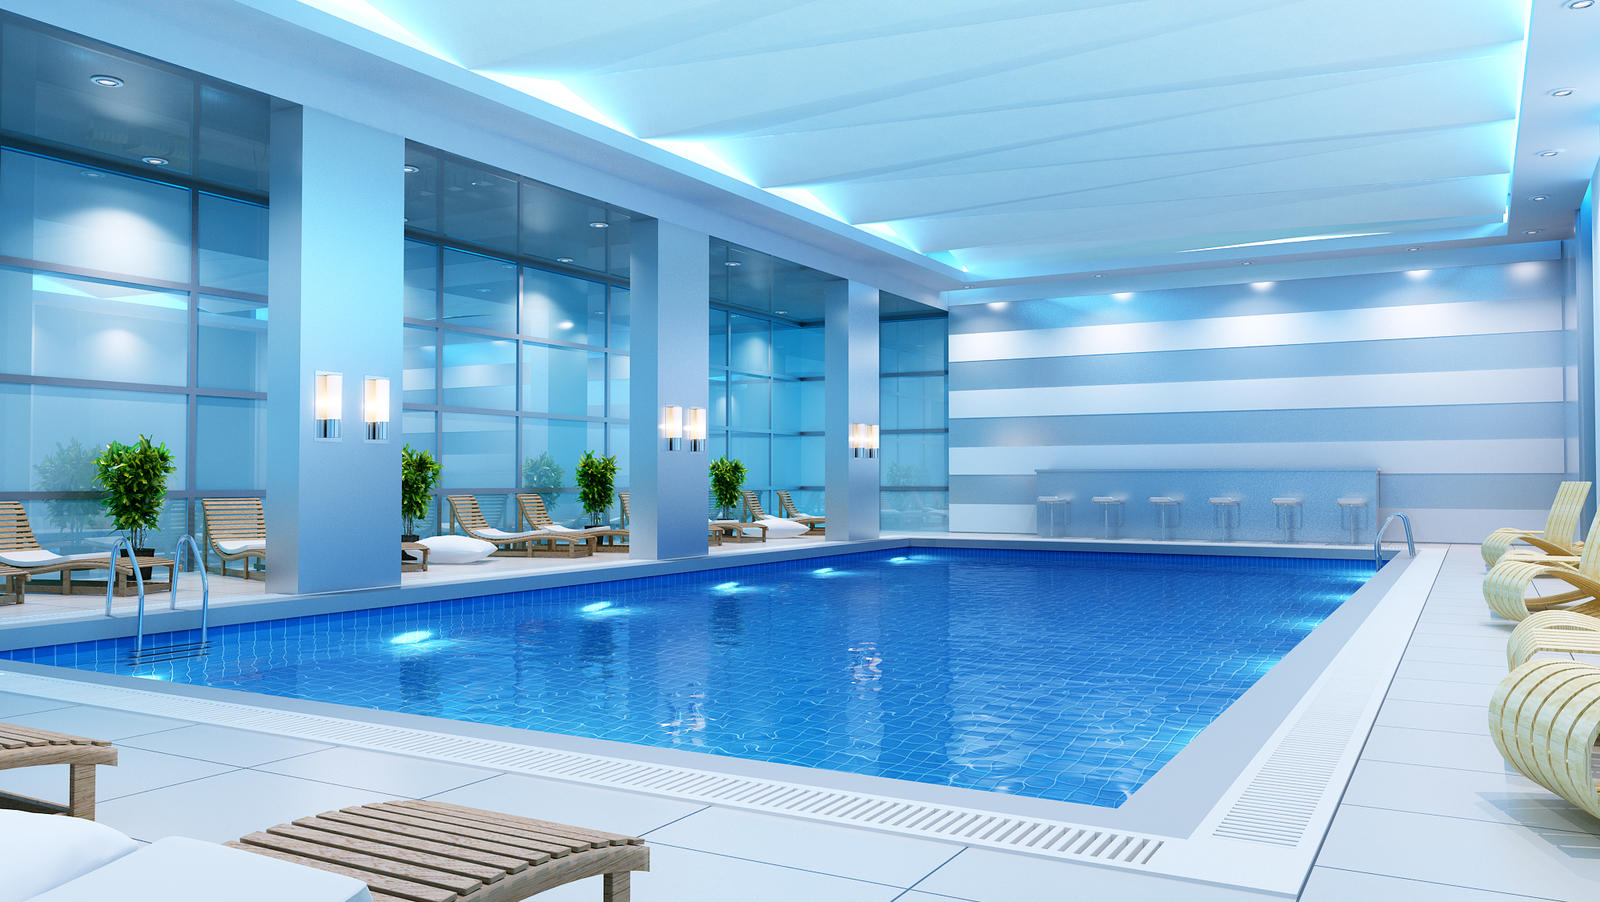 Swimming pool design by tolcha on deviantart for Virtual swimming pool design